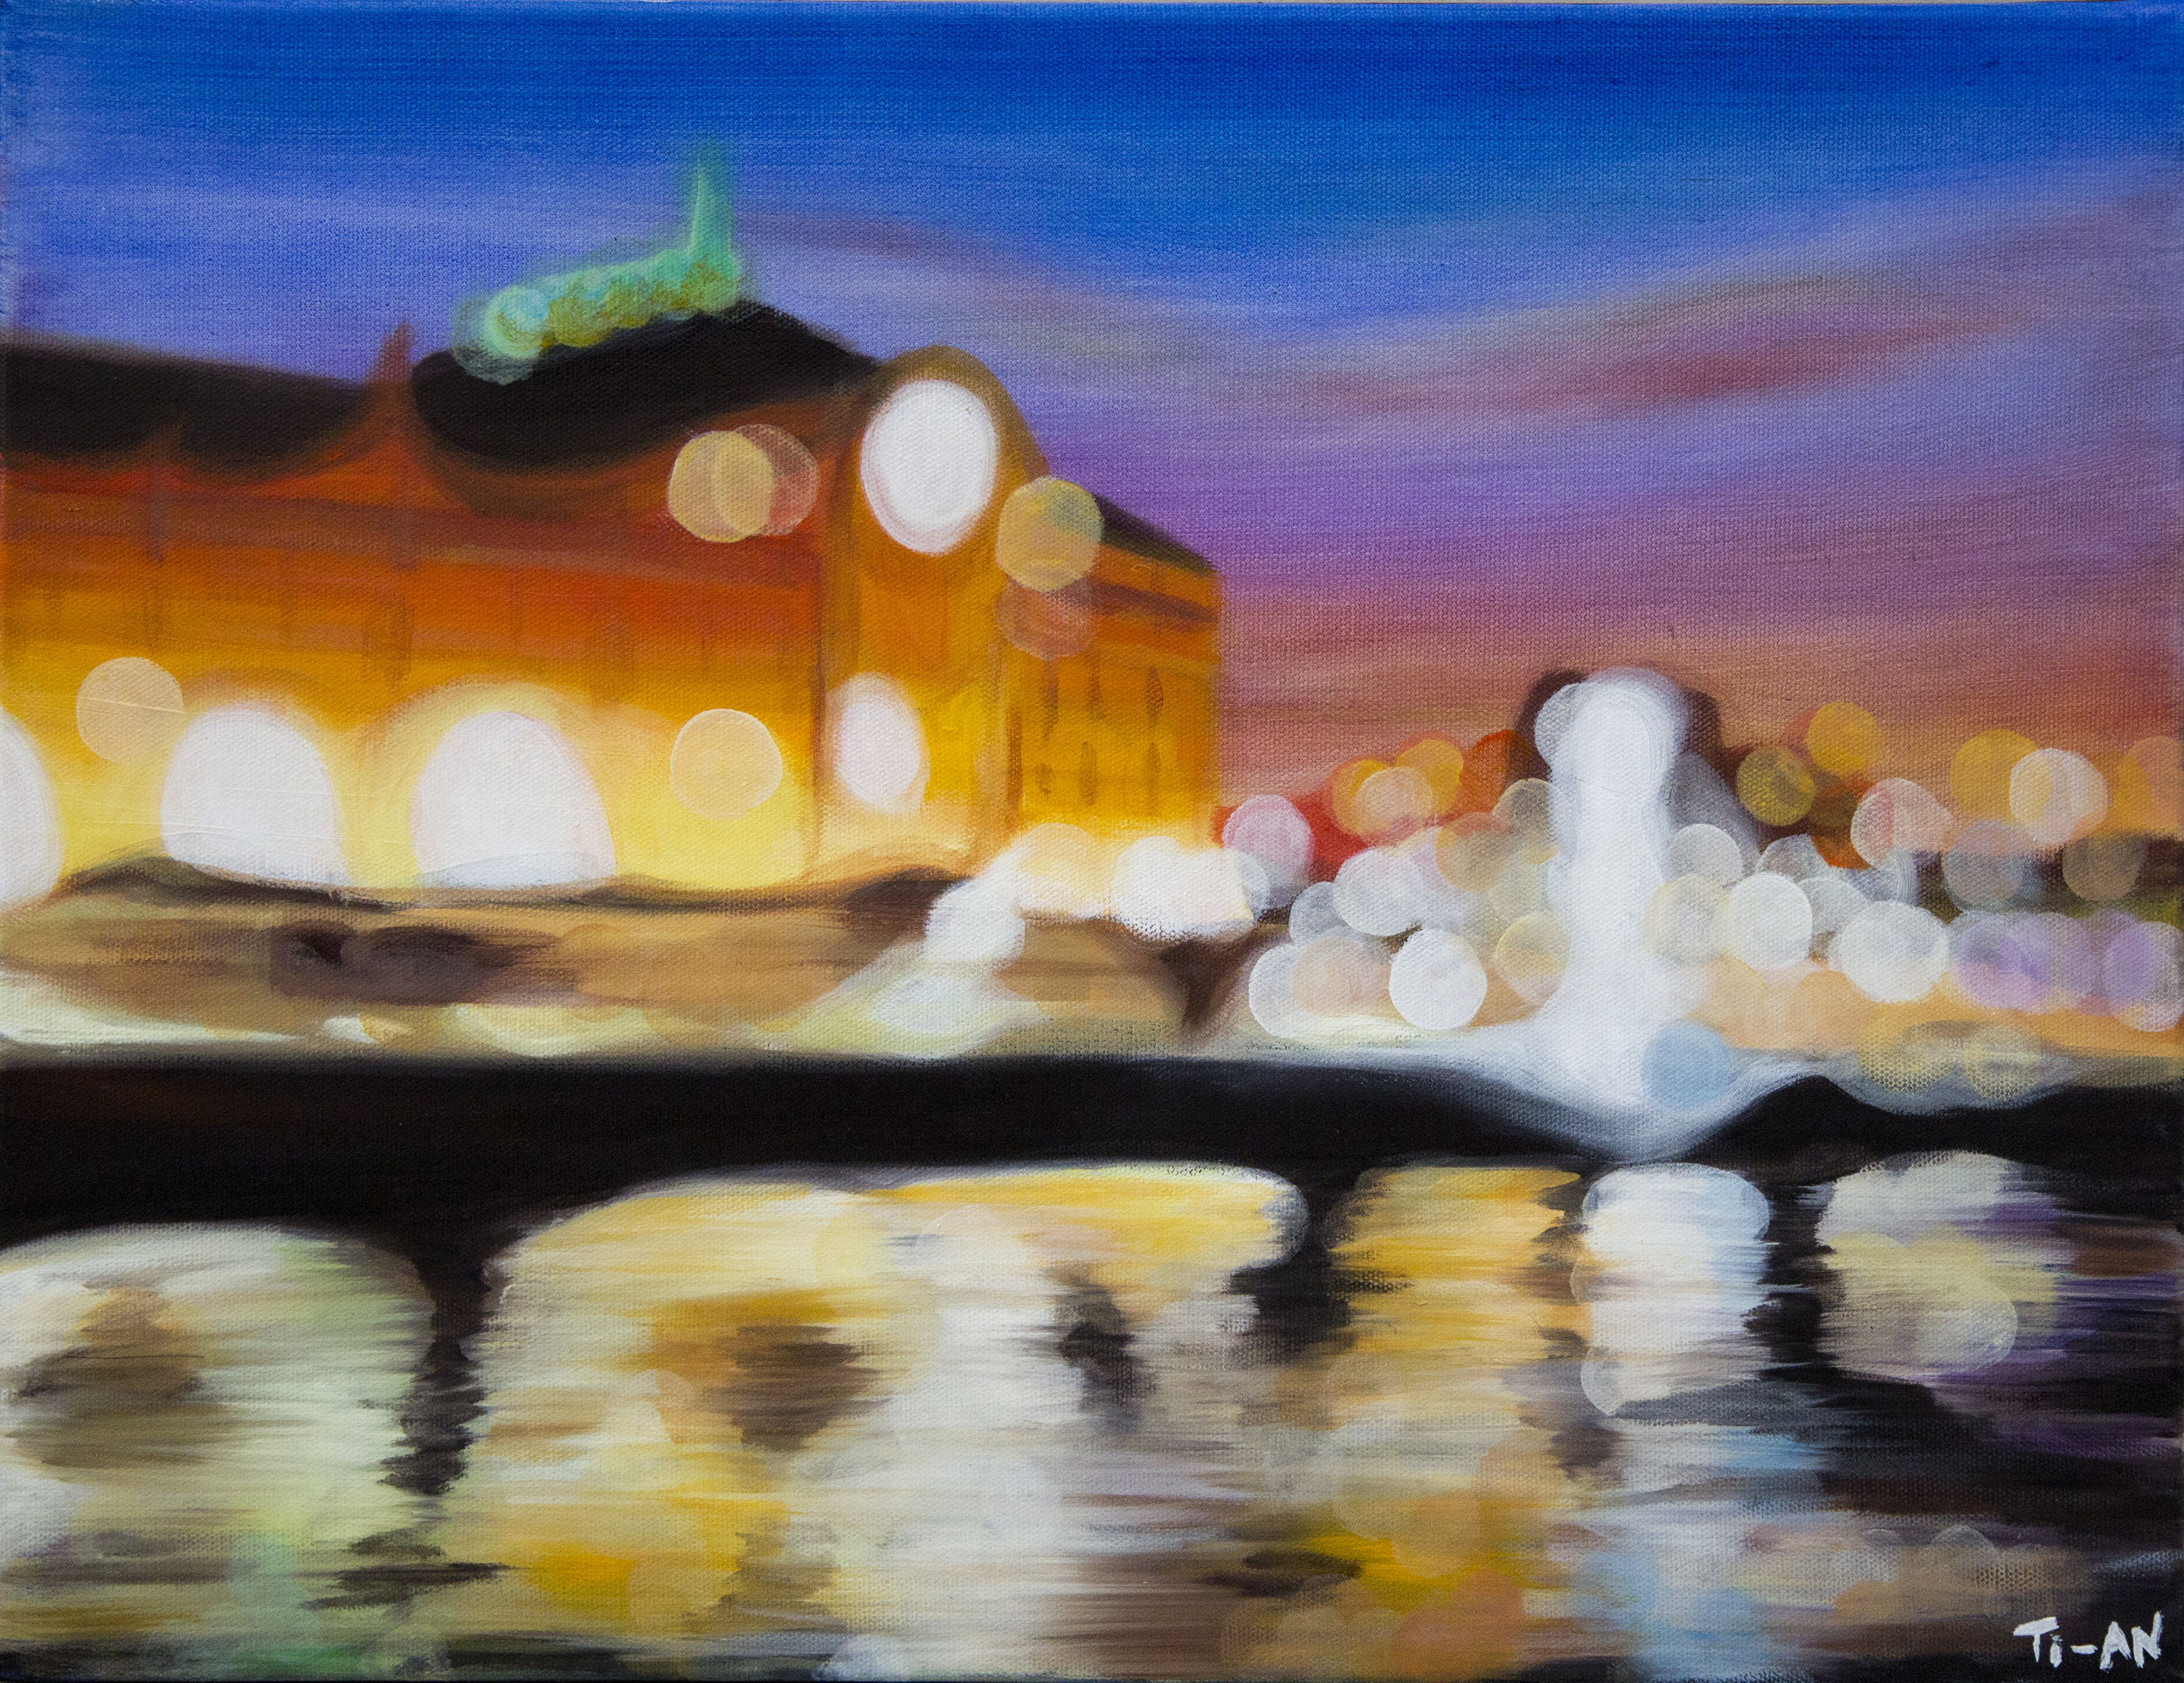 Musée d'Orsay from the Seine   16x20, oil on canvas  2012